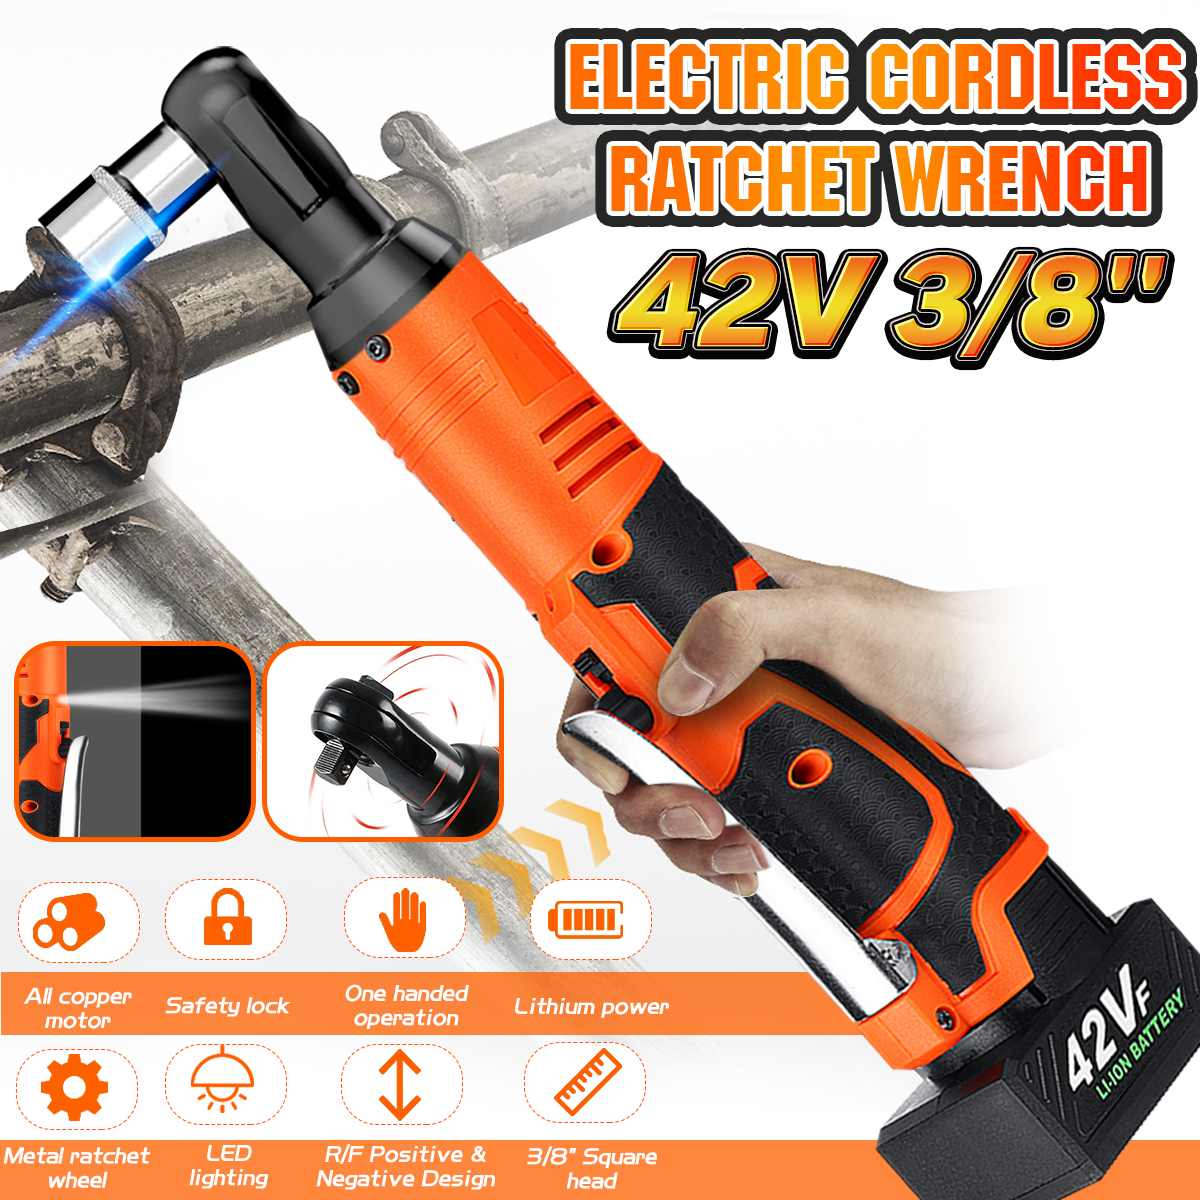 Doersupp  Electric Wrench 3/8'' 42V Cordless Ratchet Wrench With LED Light Electric Ratchet Wrenches Rechargeable 90Nm Torque